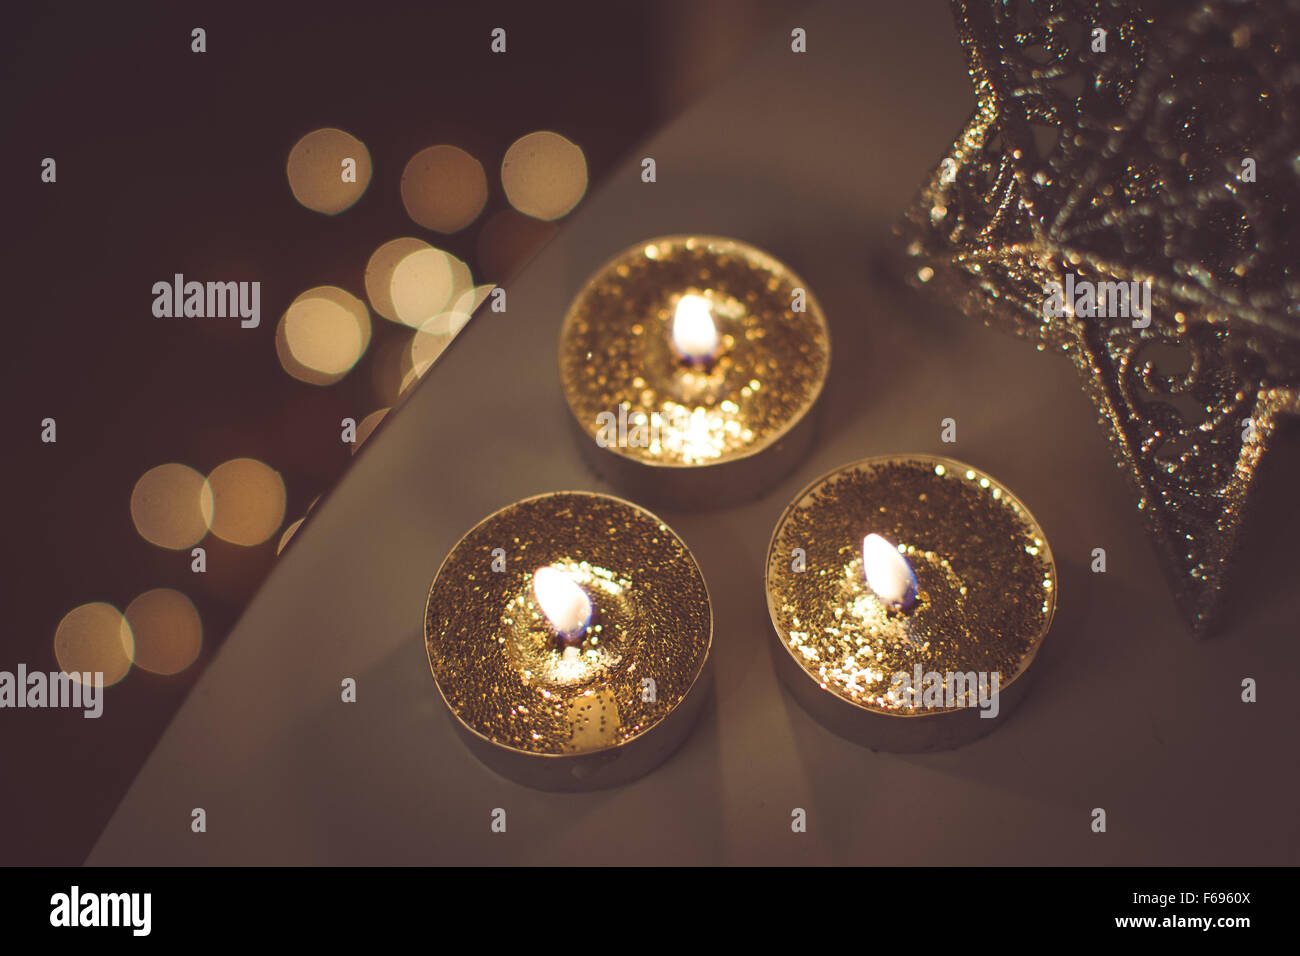 Christmas golden candles - Stock Image